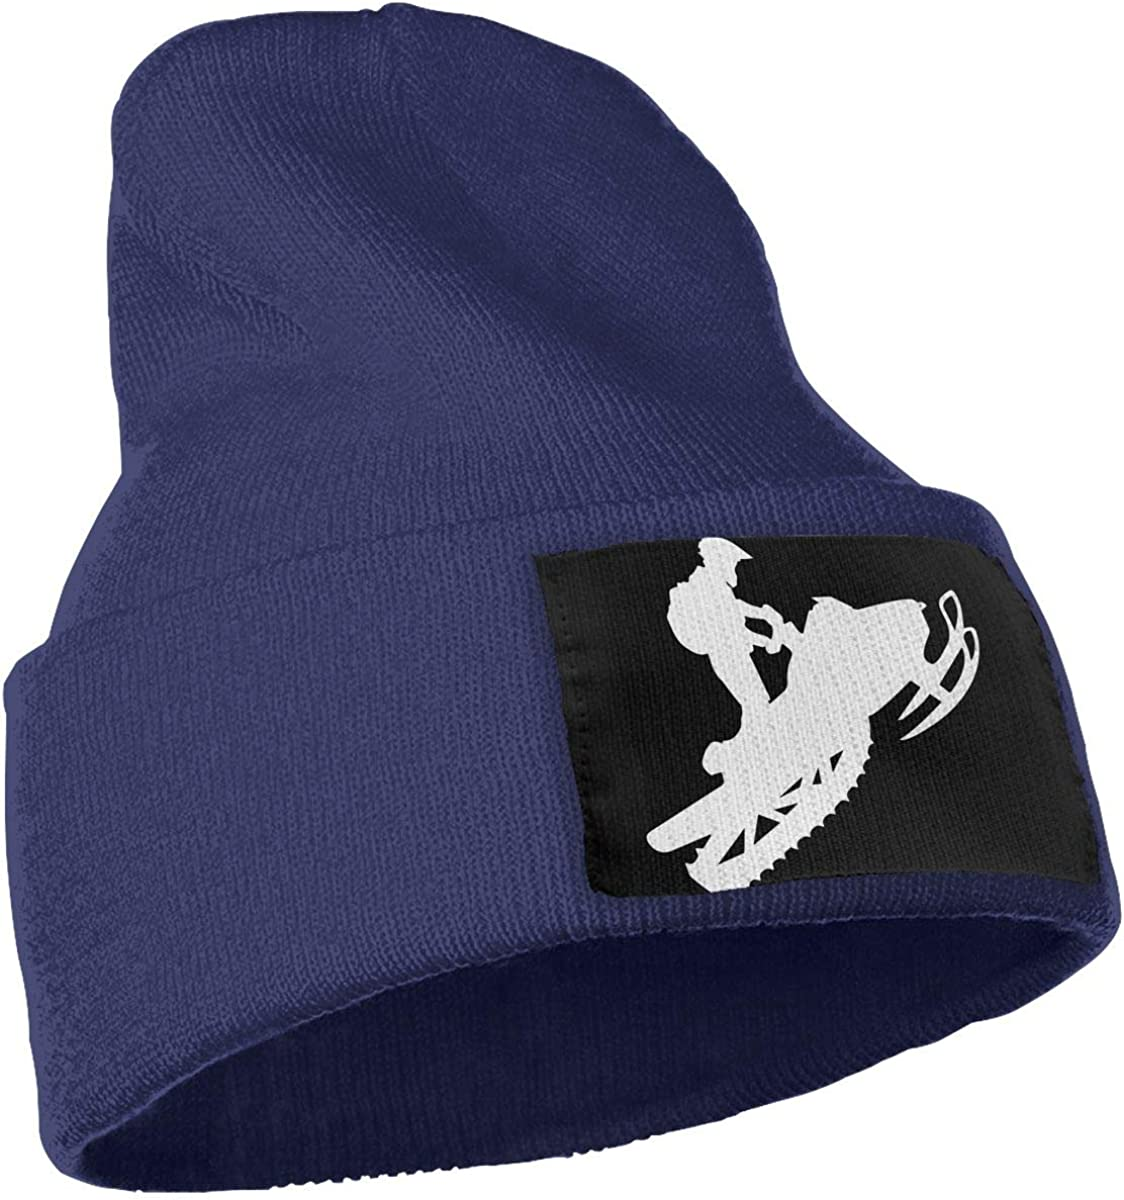 Snowmobile Men /& Women Knit Hats Stretchy /& Soft Skull Cap Beanie